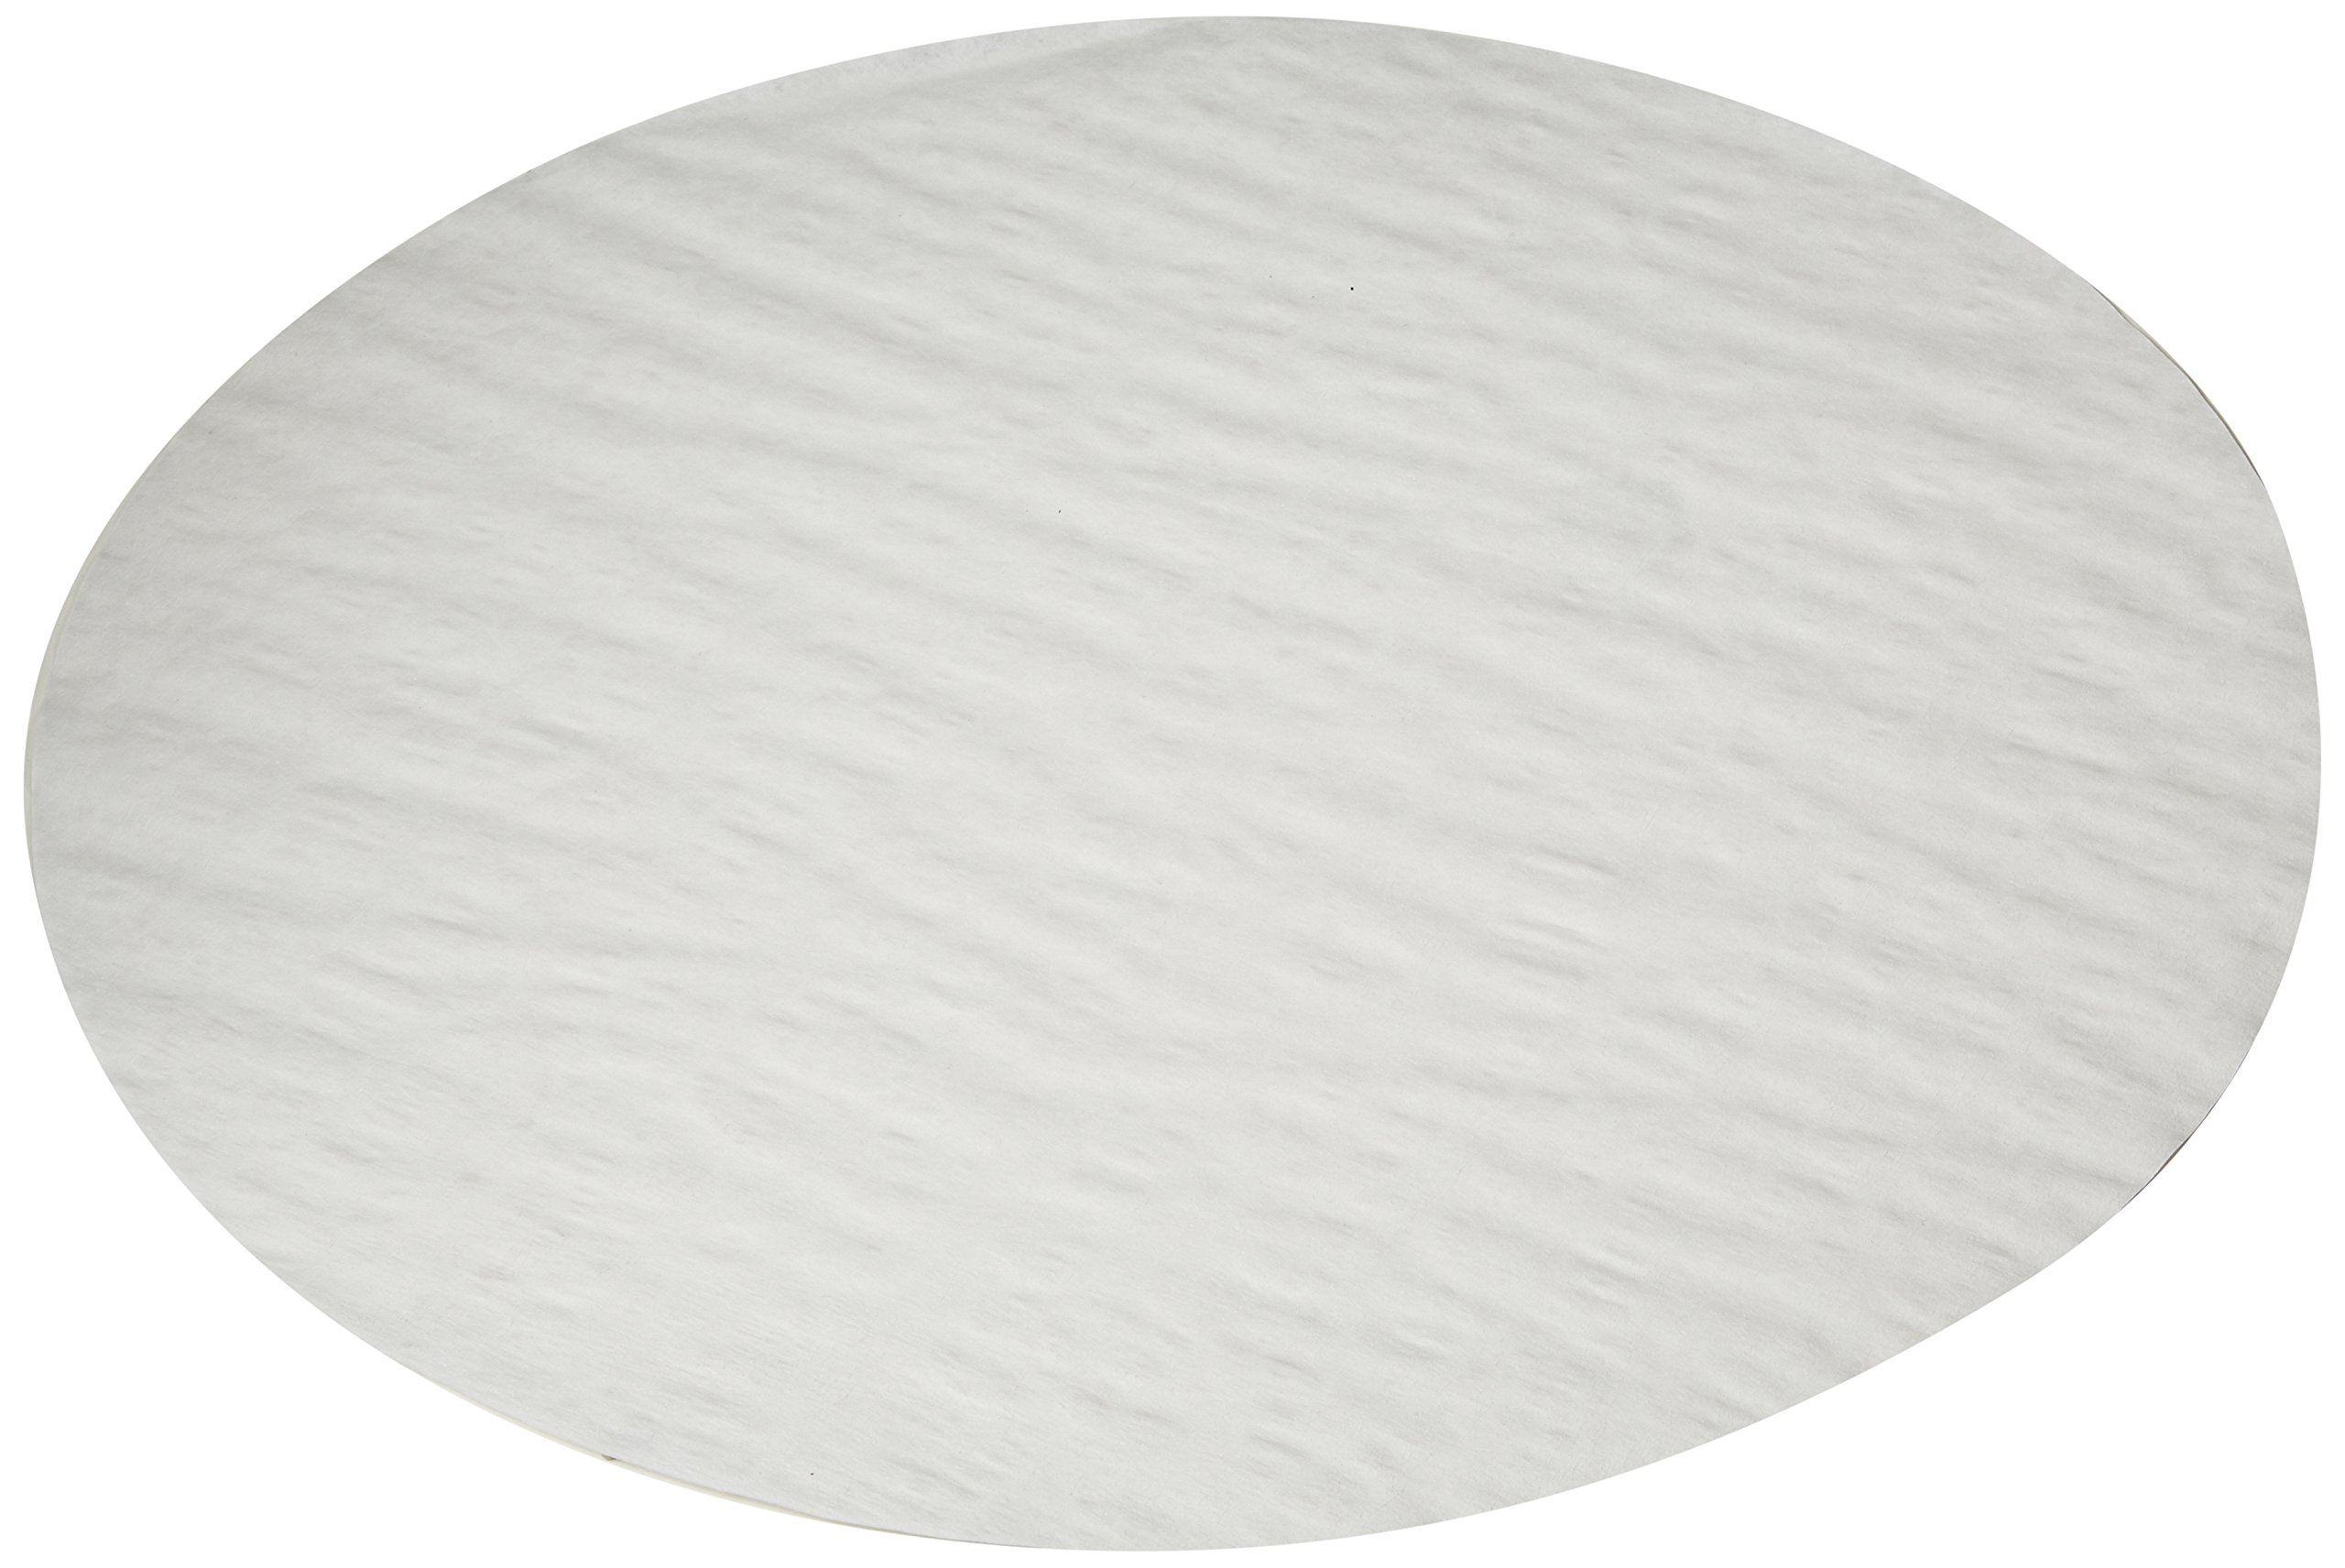 GE Whatman 10347525 Cellulose Qualitative Standard Filter Paper for Technical Use, Shark Skin Grade, Circle, 500mm Diameter (Pack of 100)